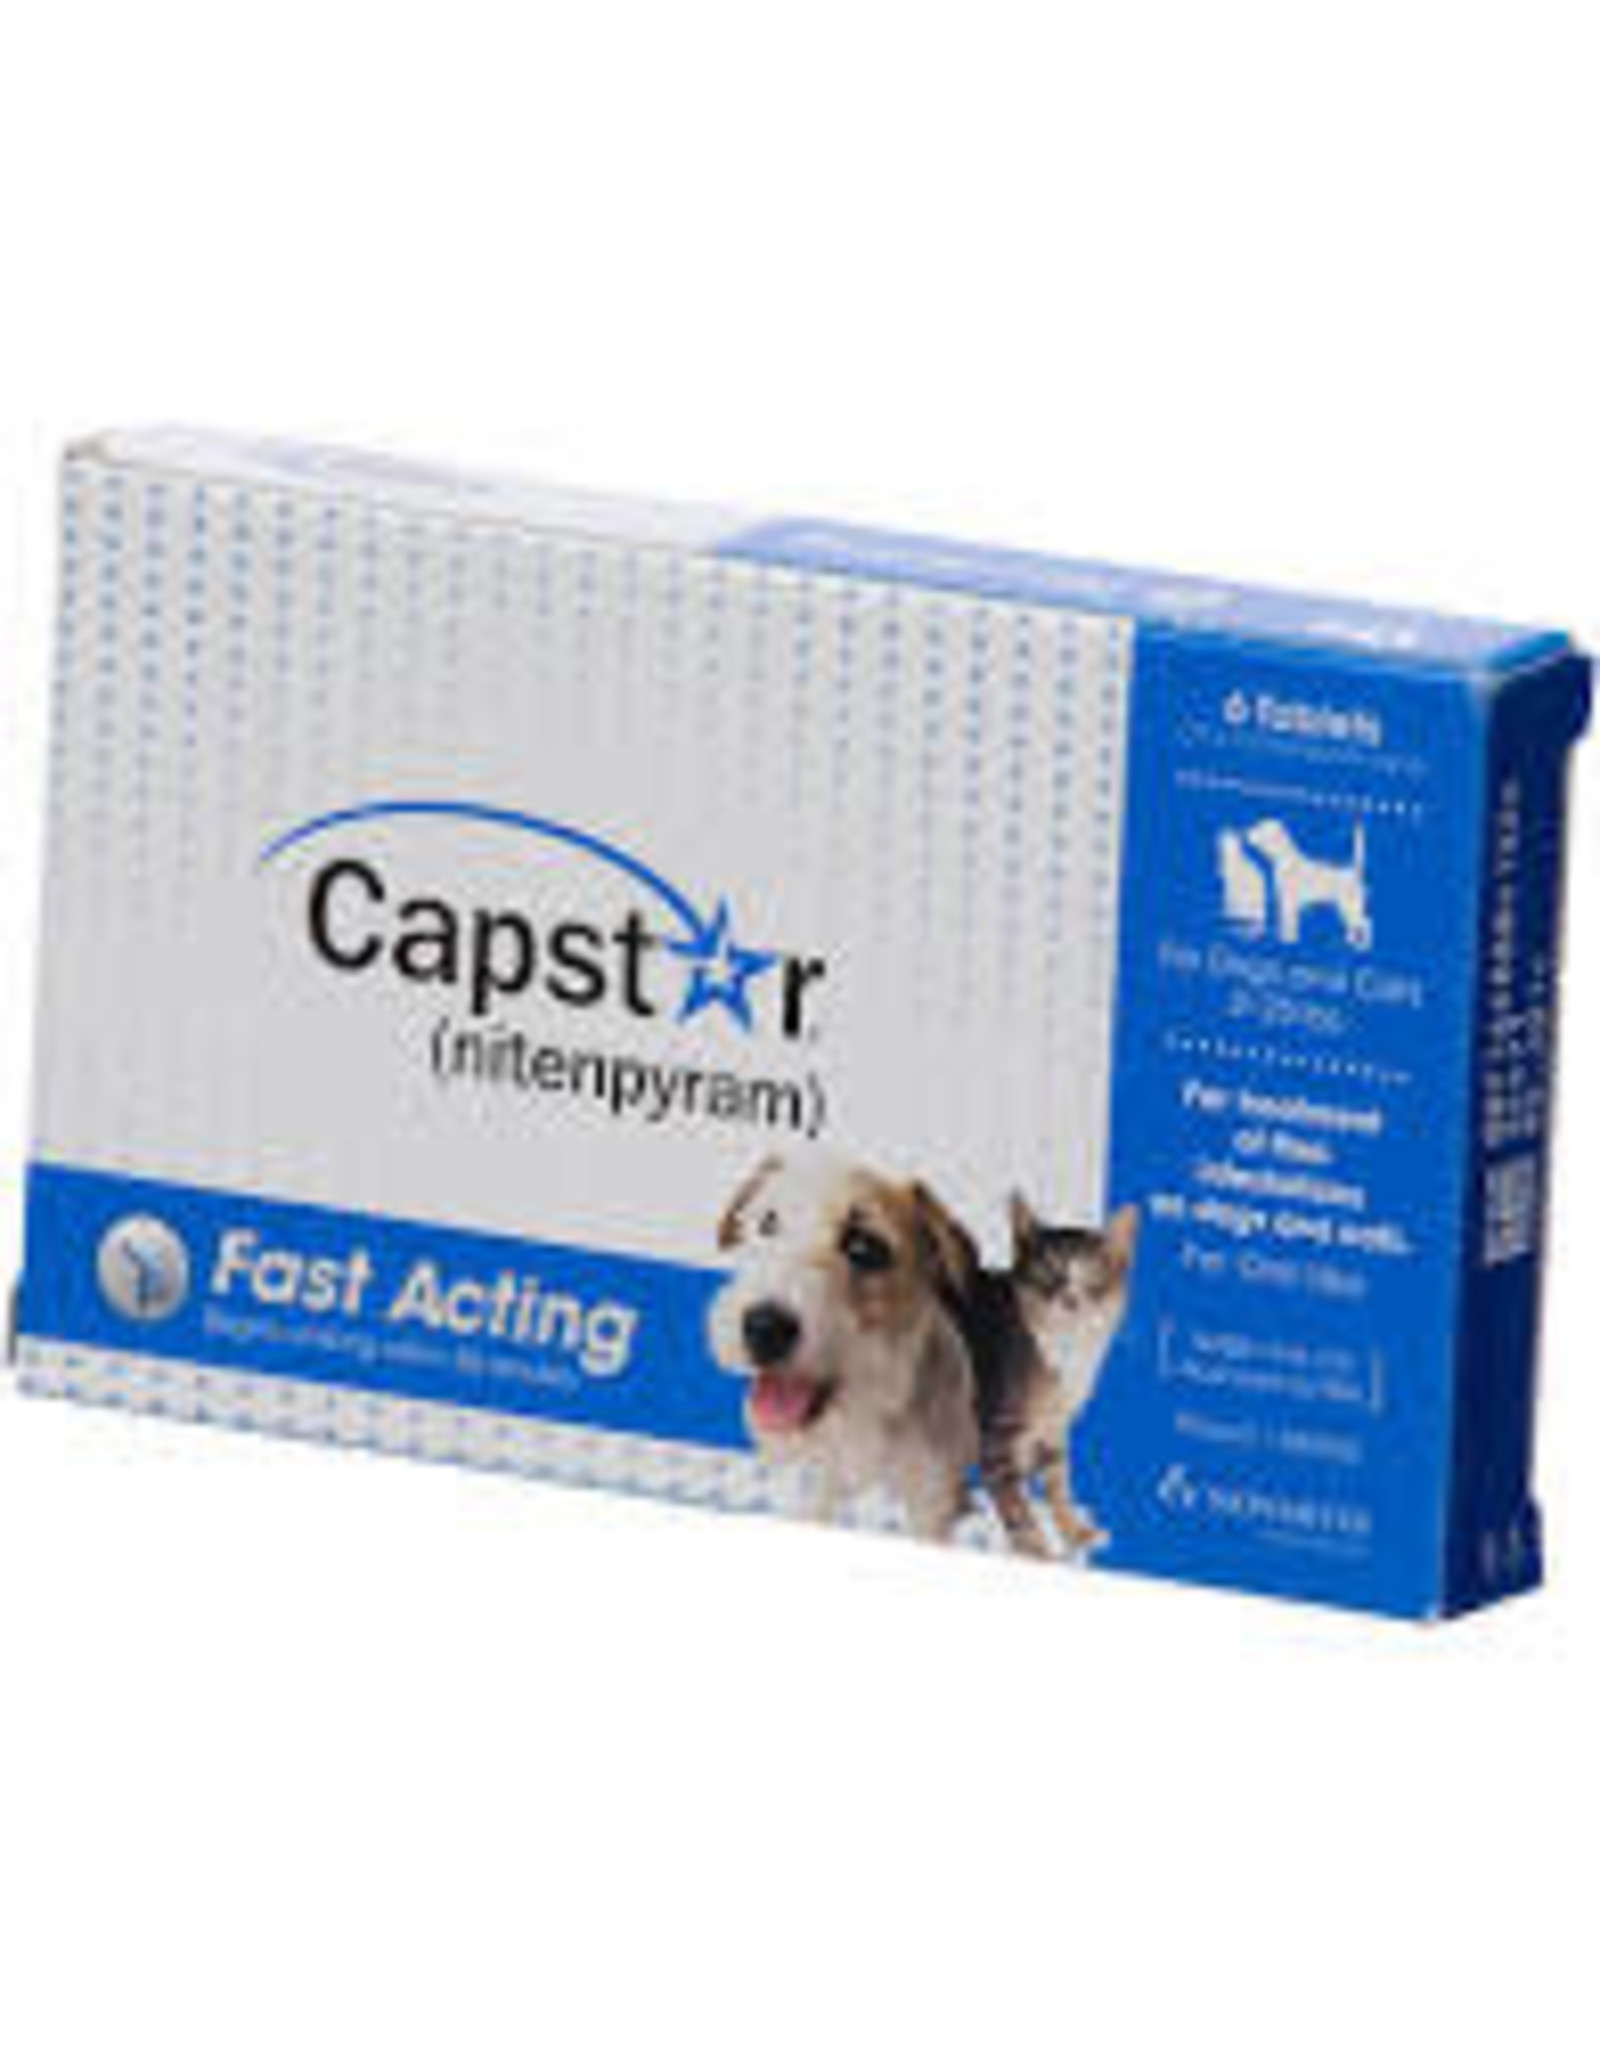 50/50 Pet Supply Capstar 2-25 lbs each